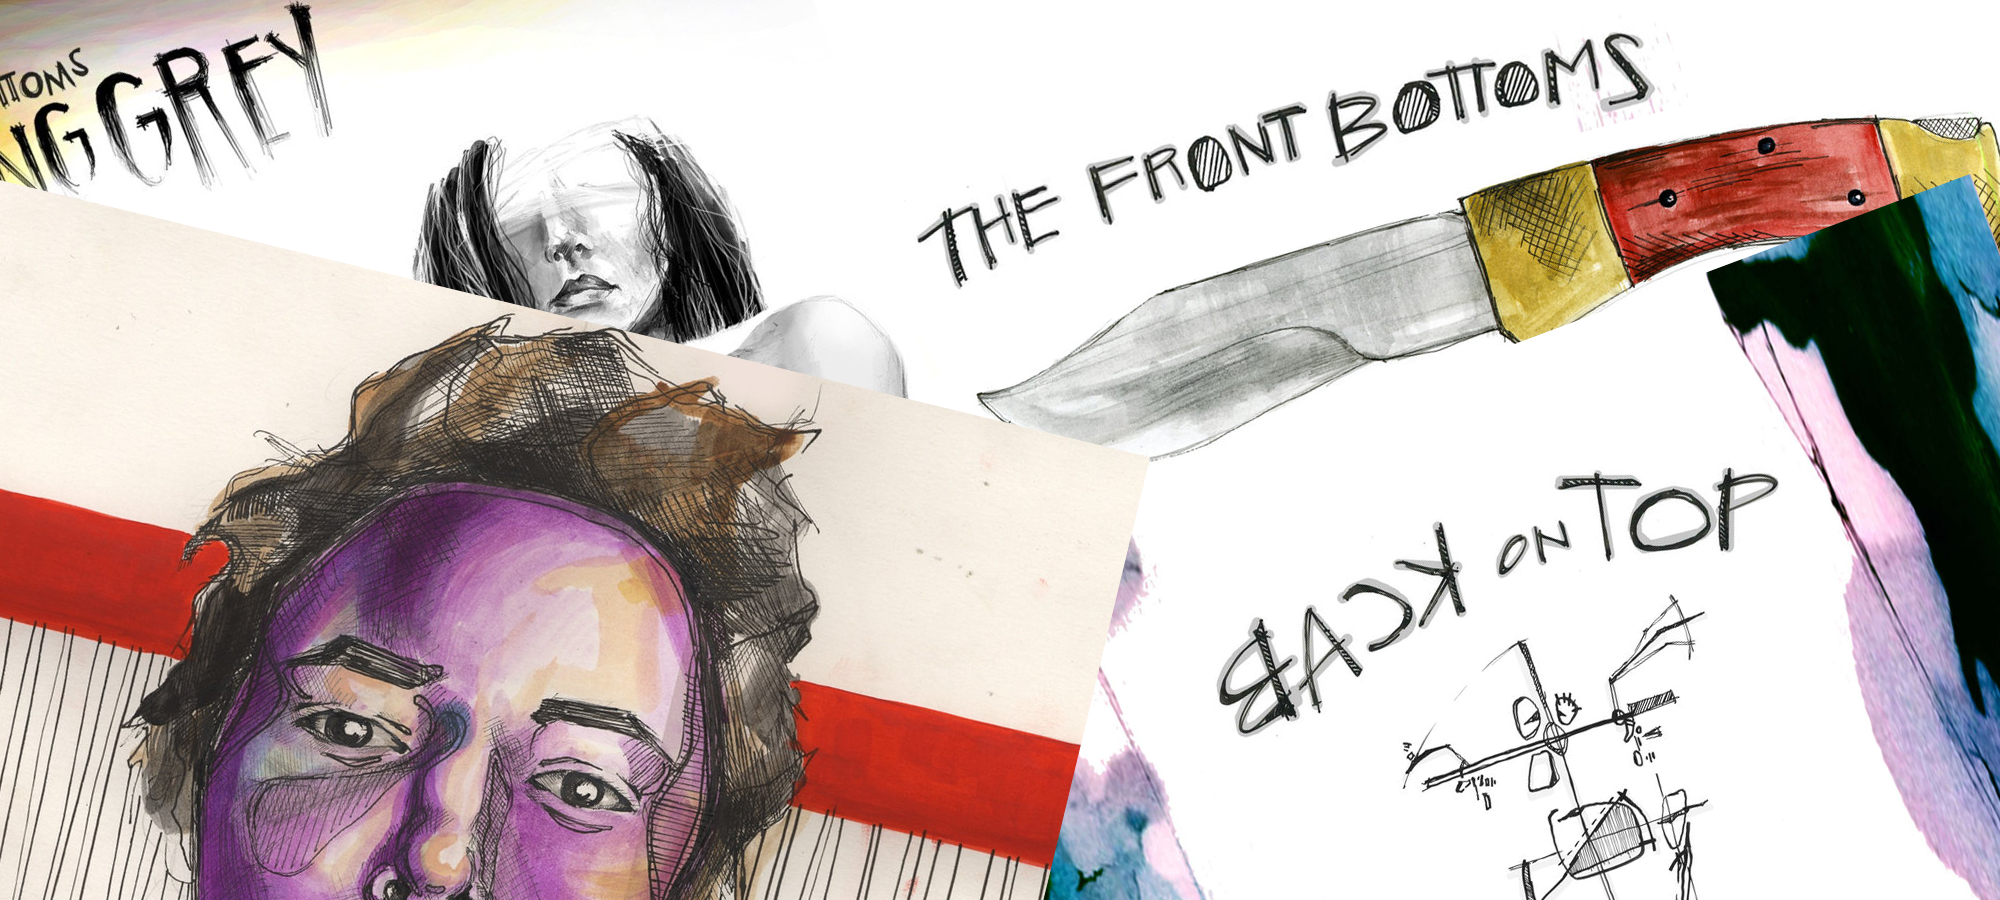 FEATURE: On 'Going Grey' with The Front Bottoms